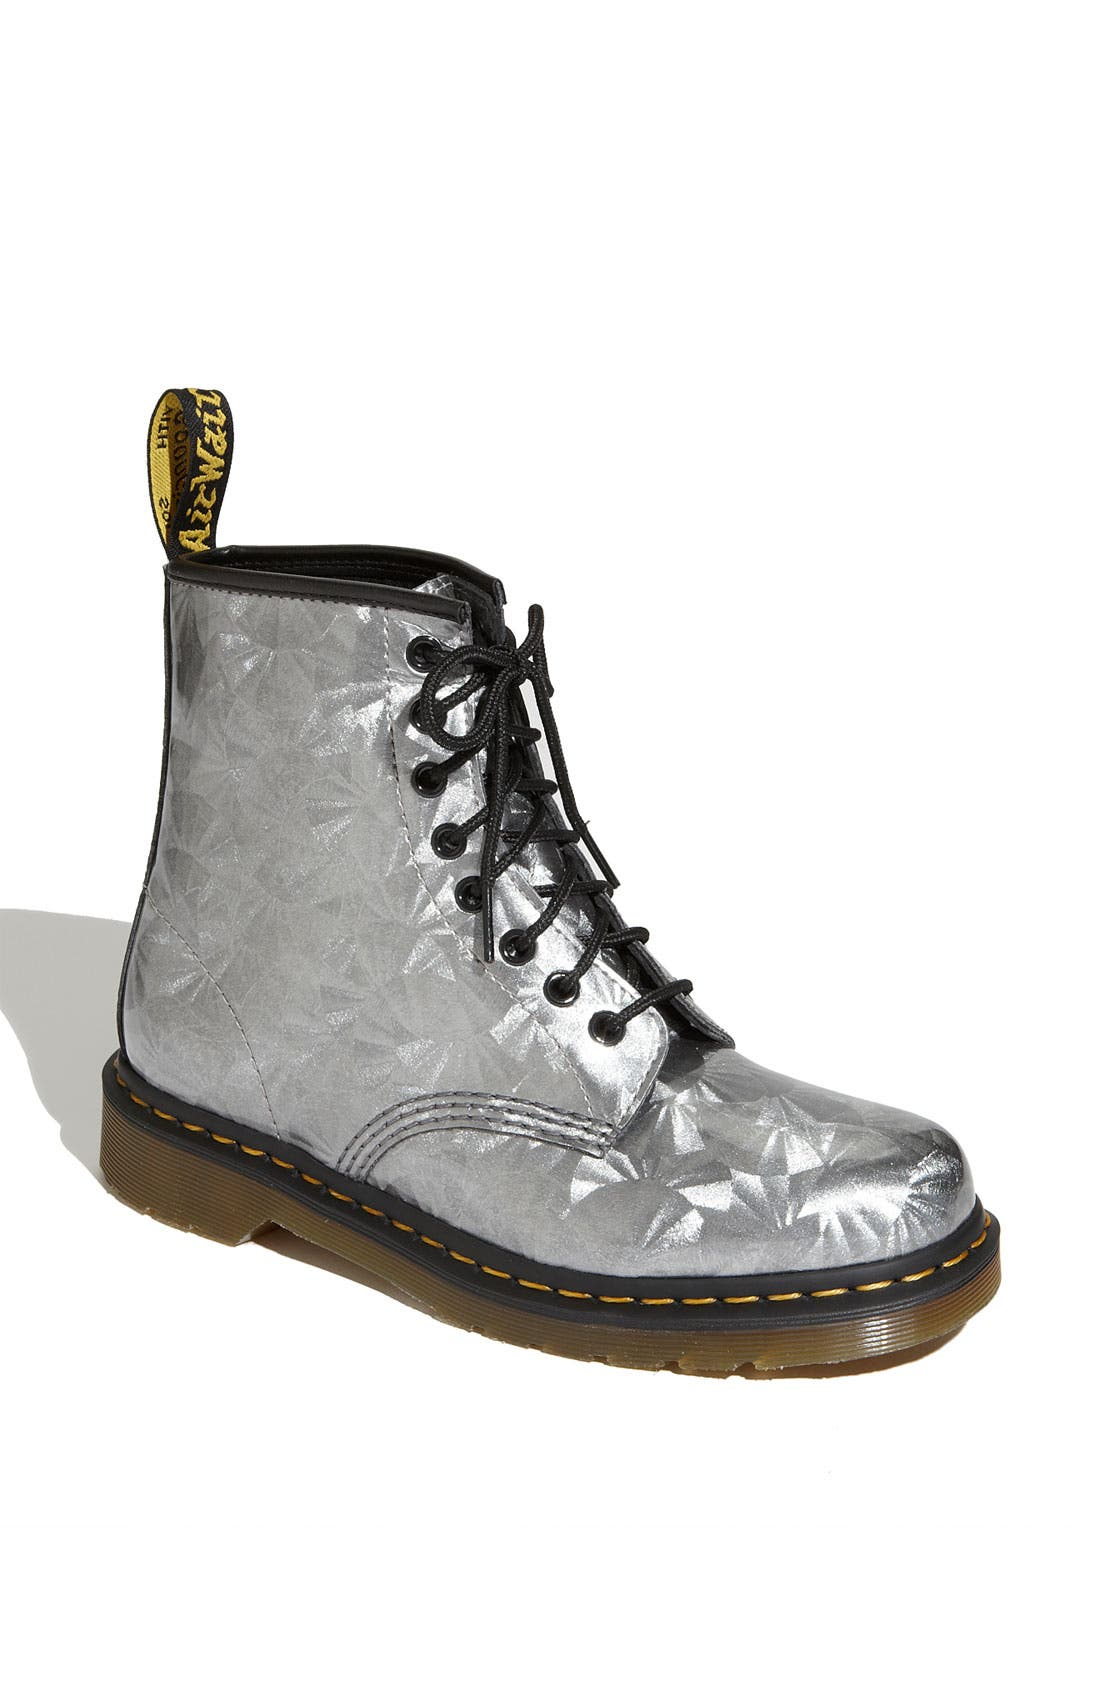 Alternate Image 1 Selected - Dr. Martens 'Jewel' Boot